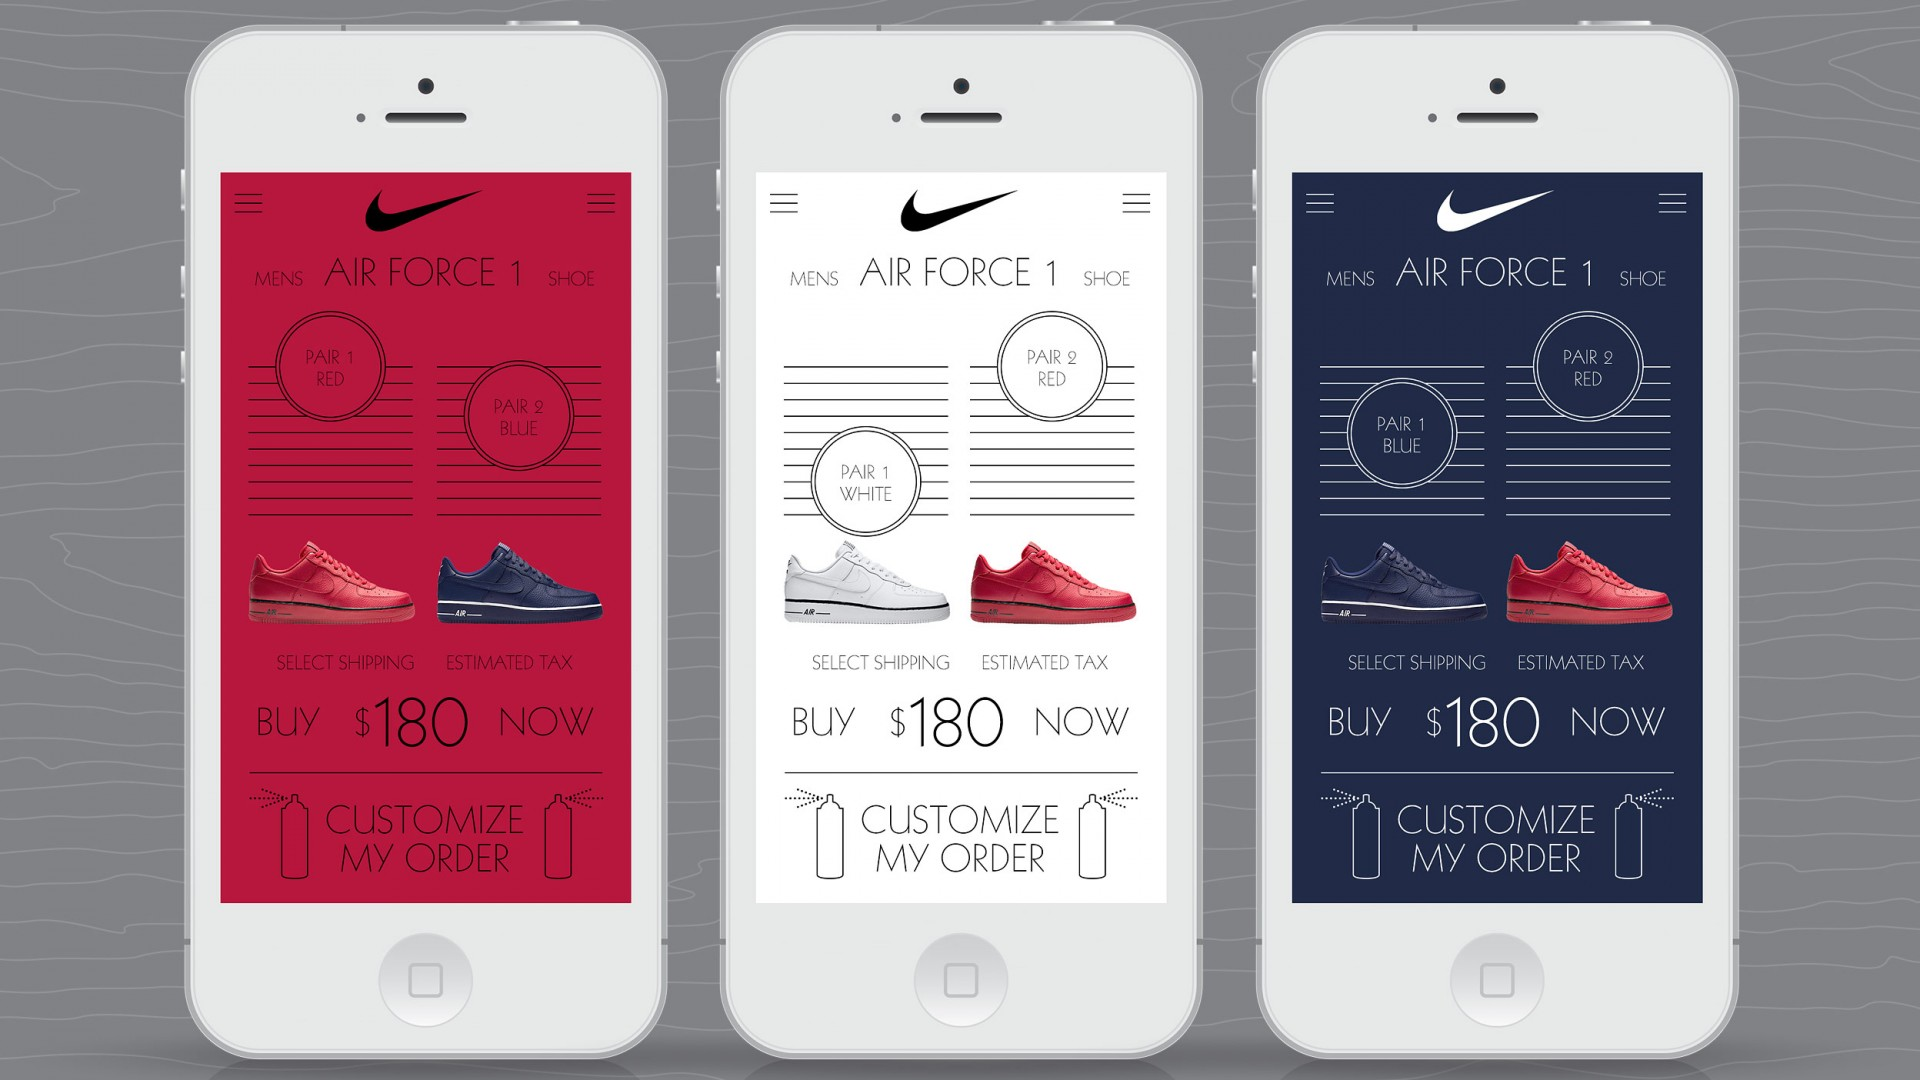 Match Your Mood, Nike UX/UI, mobile phone shopping selections views.